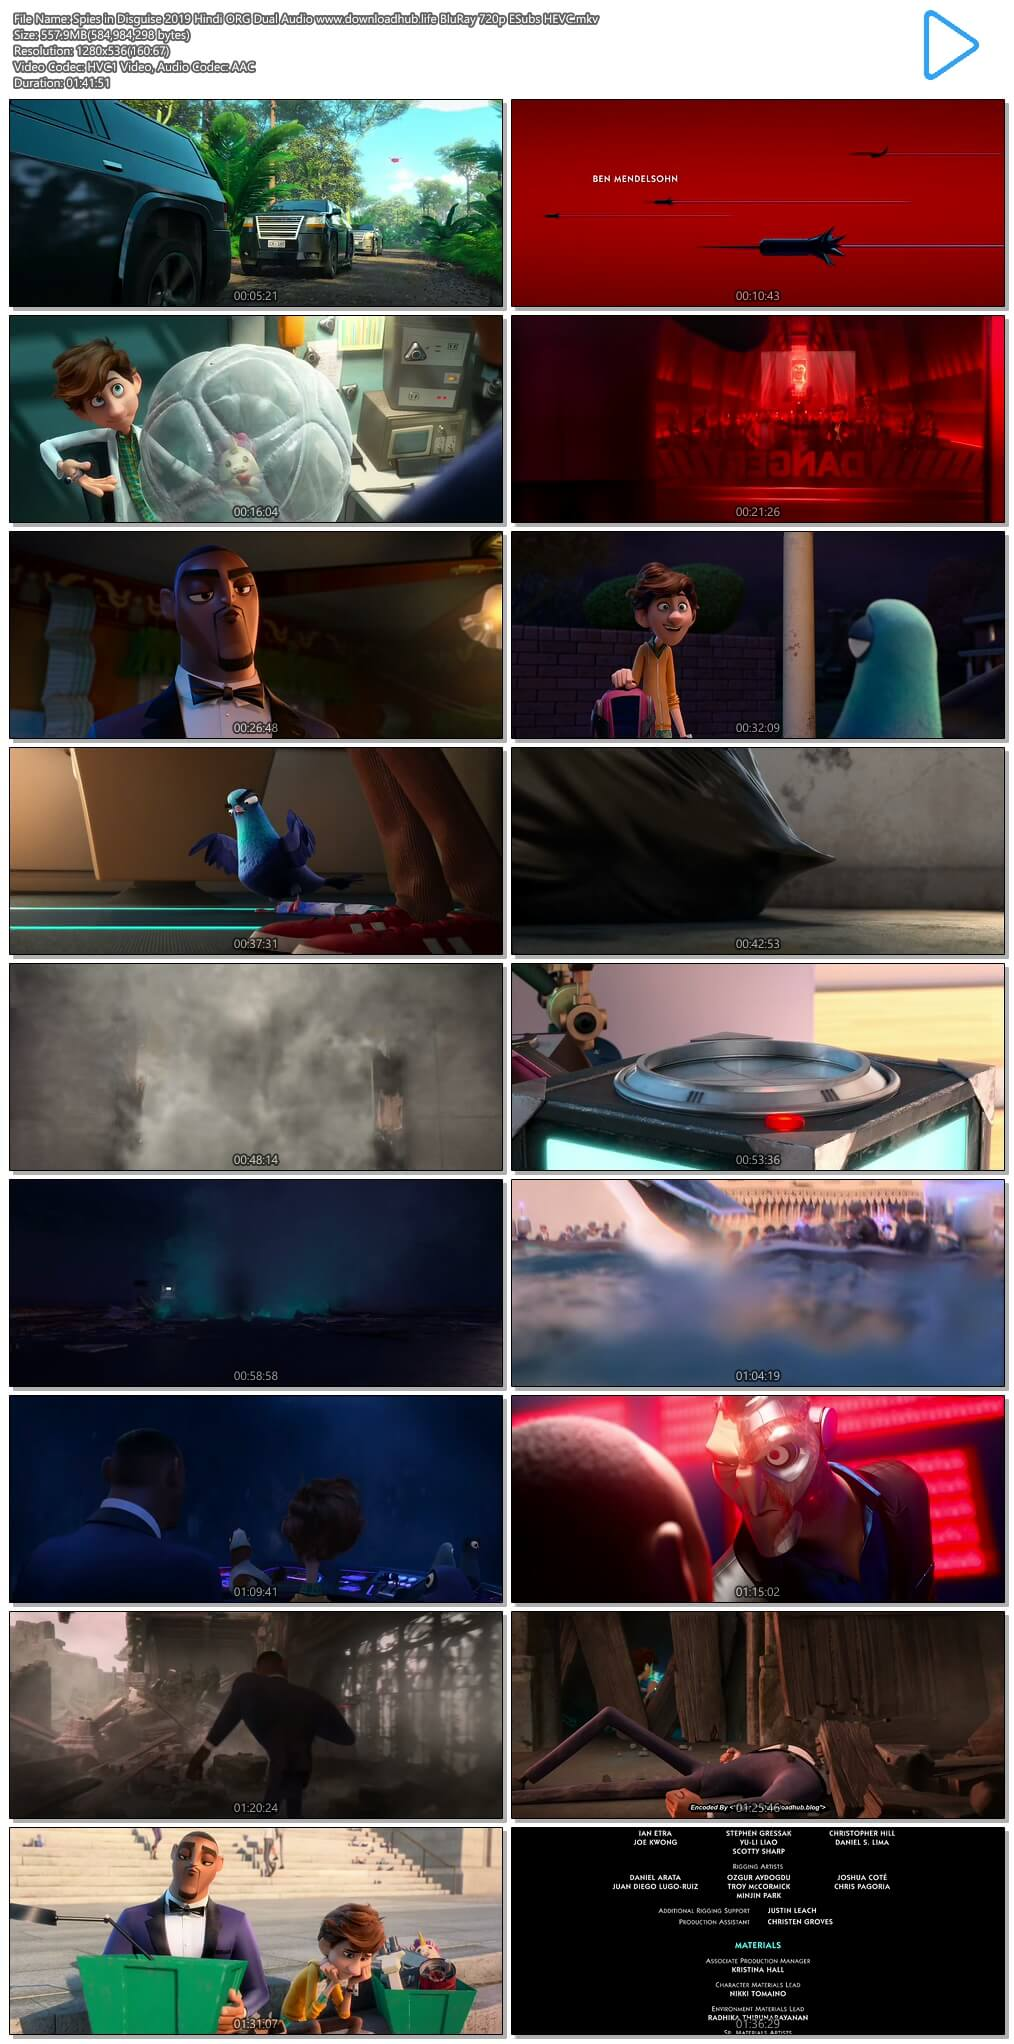 Spies in Disguise 2019 Hindi ORG Dual Audio 550MB BluRay 720p ESubs HEVC